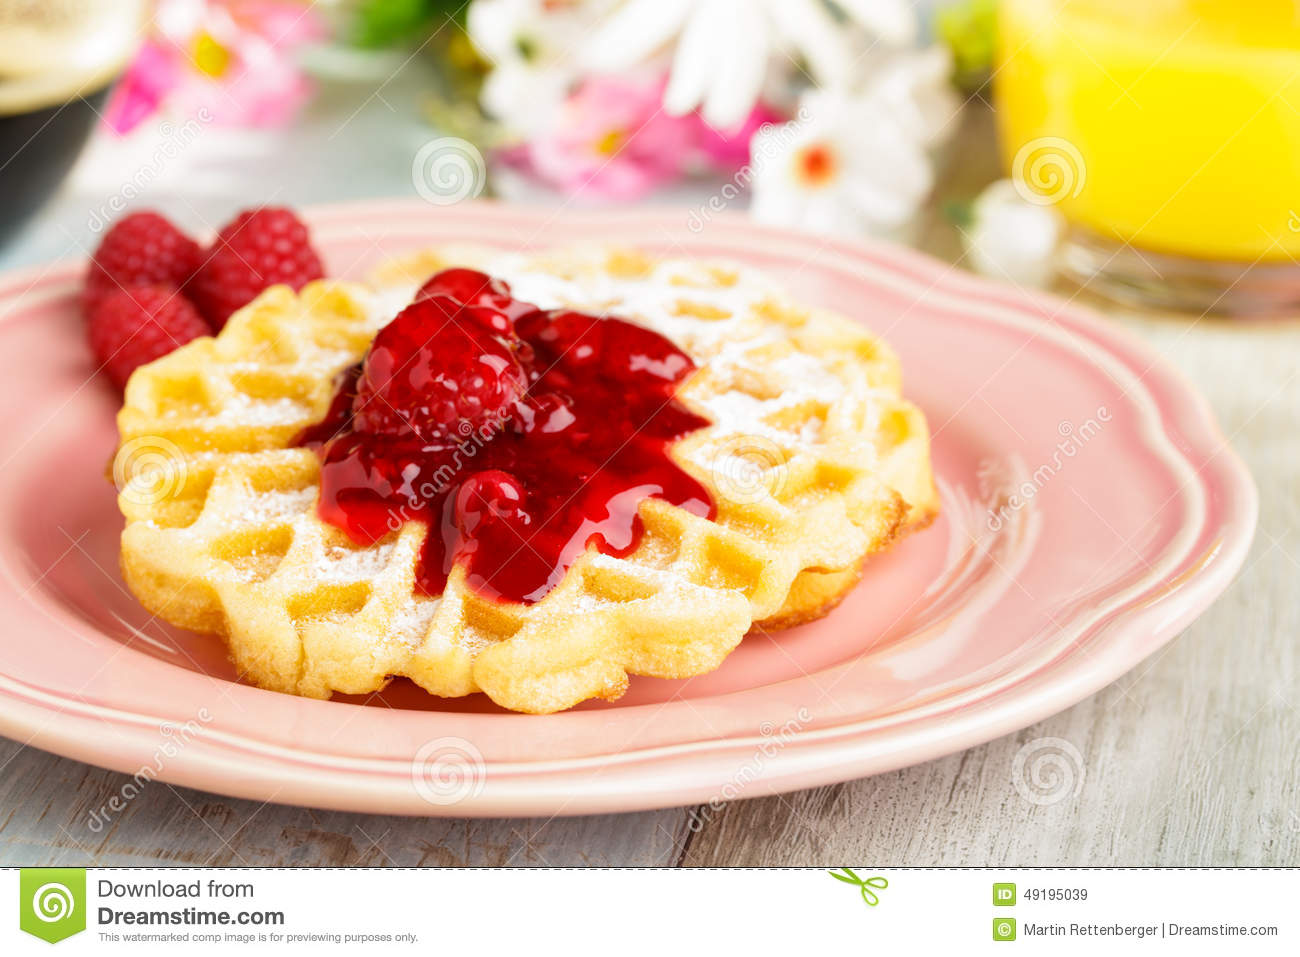 Download Waffles With Red Fruit Jelly Stock Image - Image of breakfast, pile: 49195039